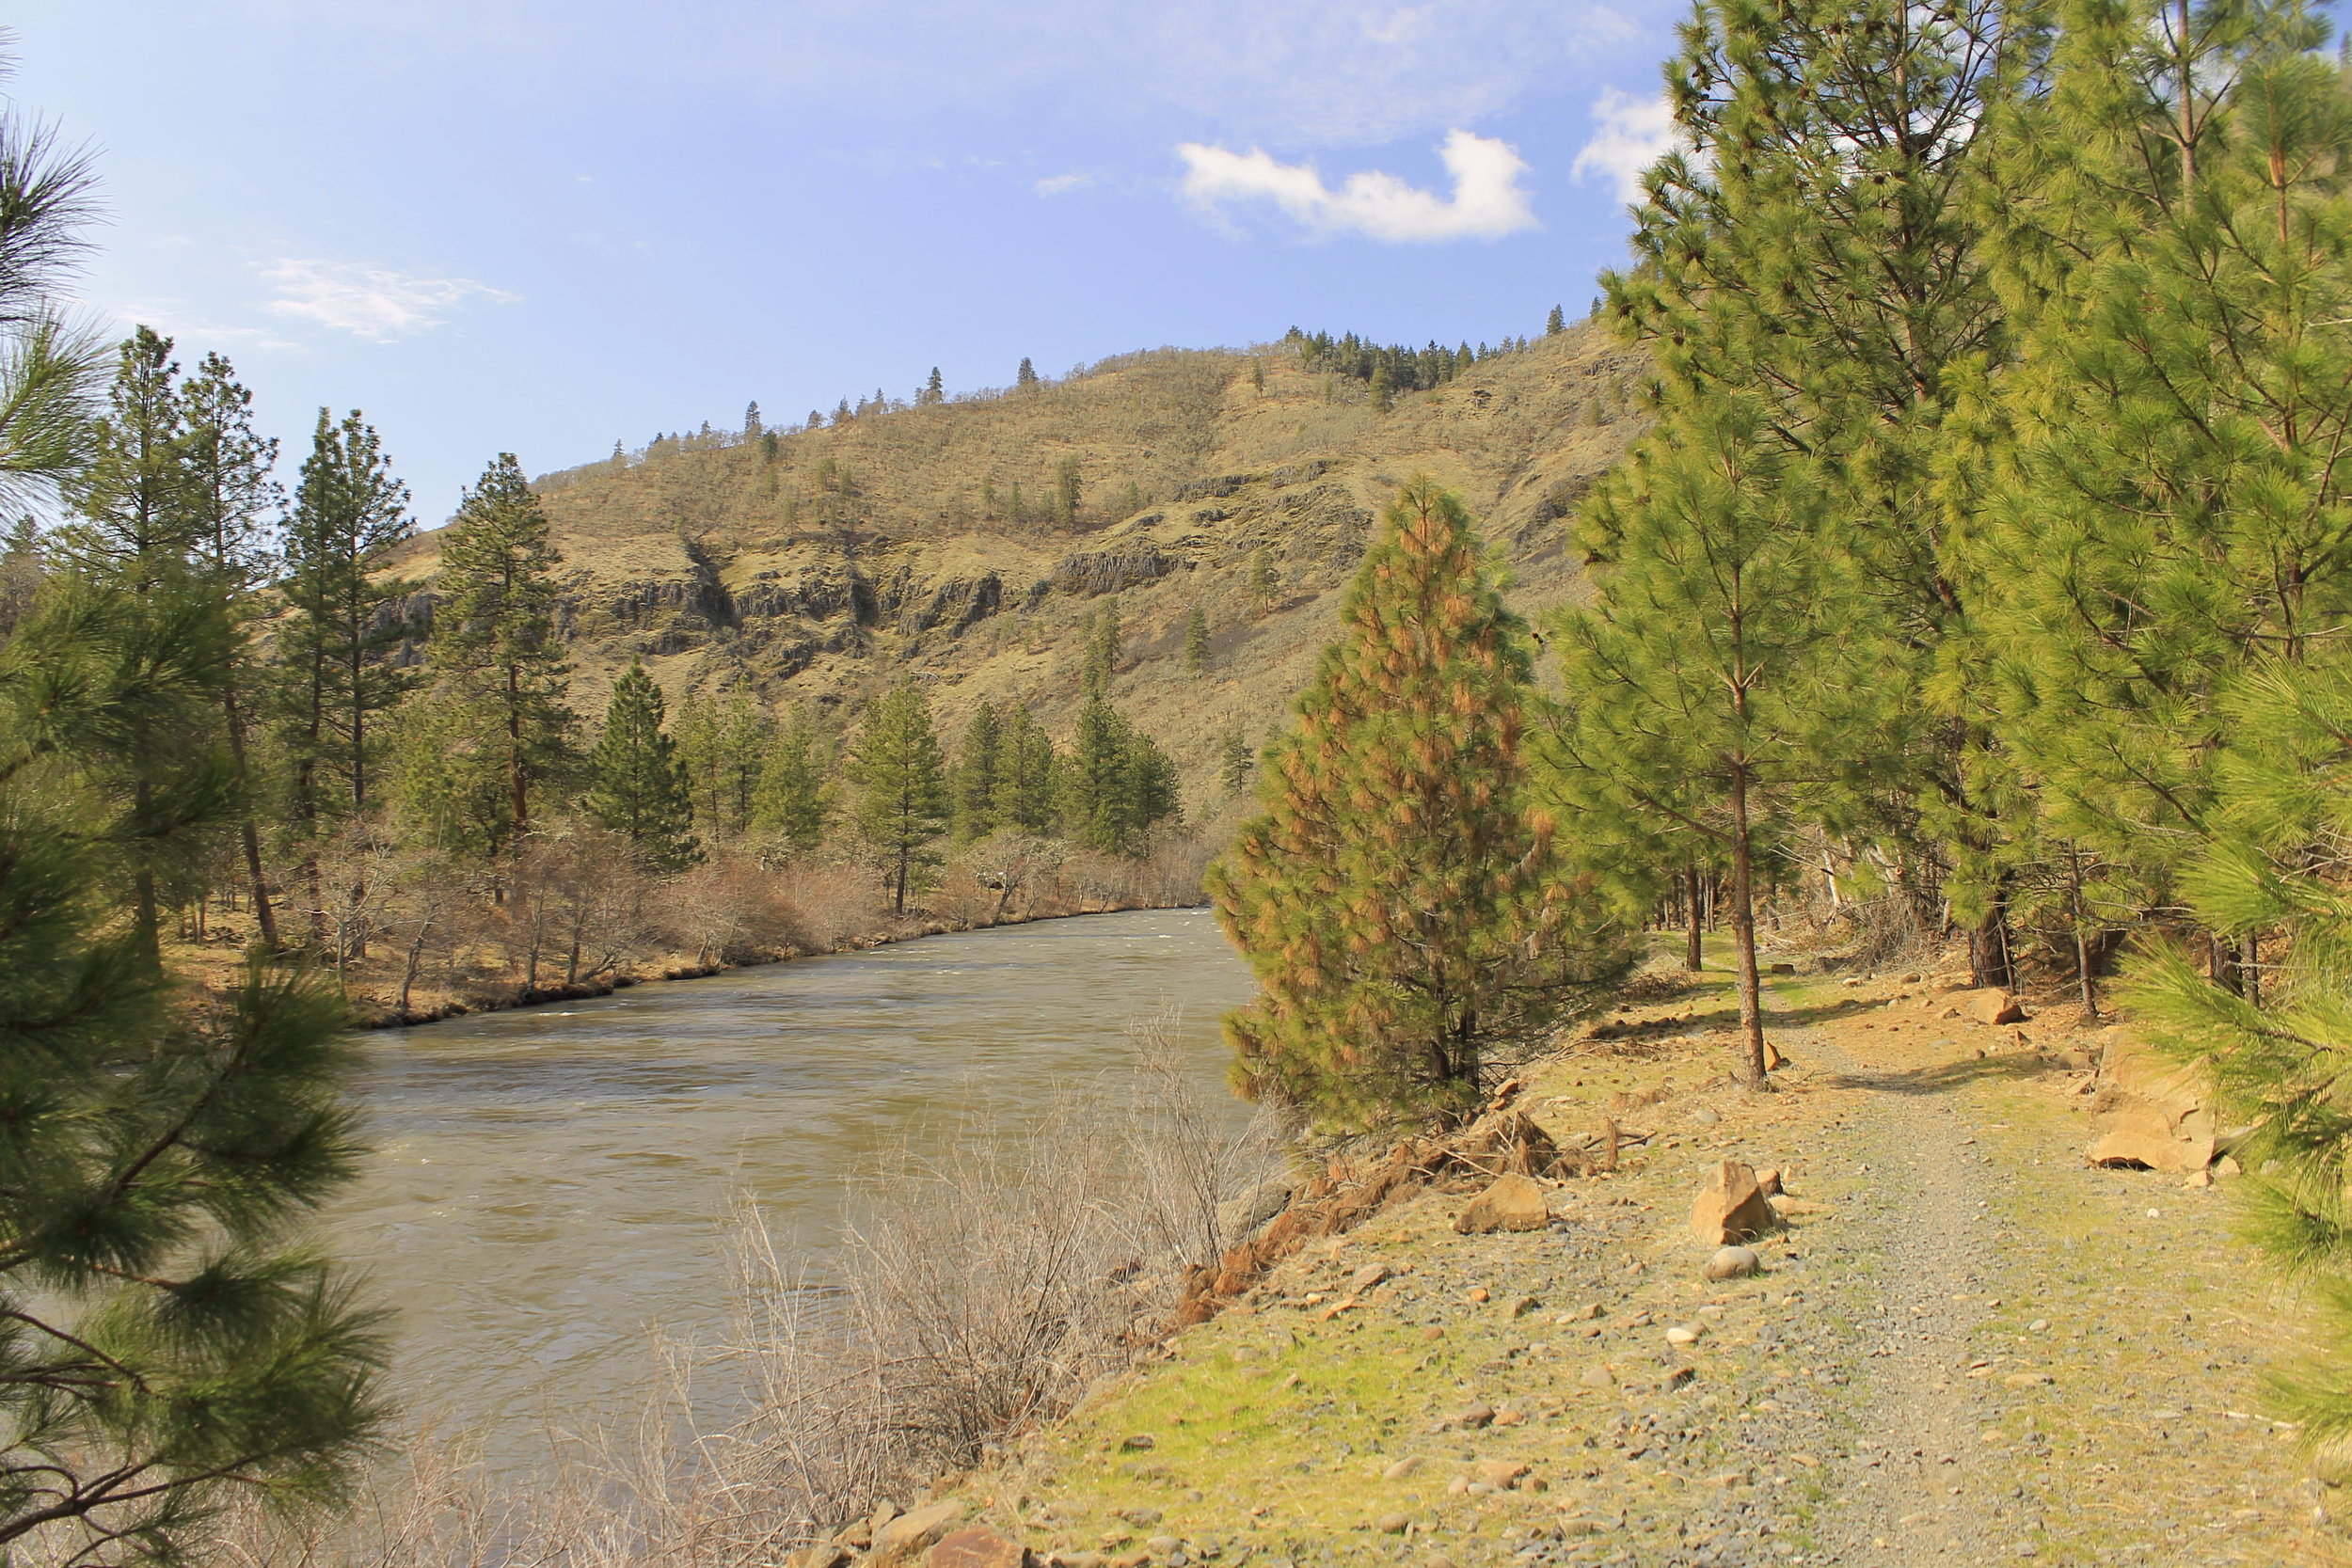 Hiking down the Klickitat River Trail